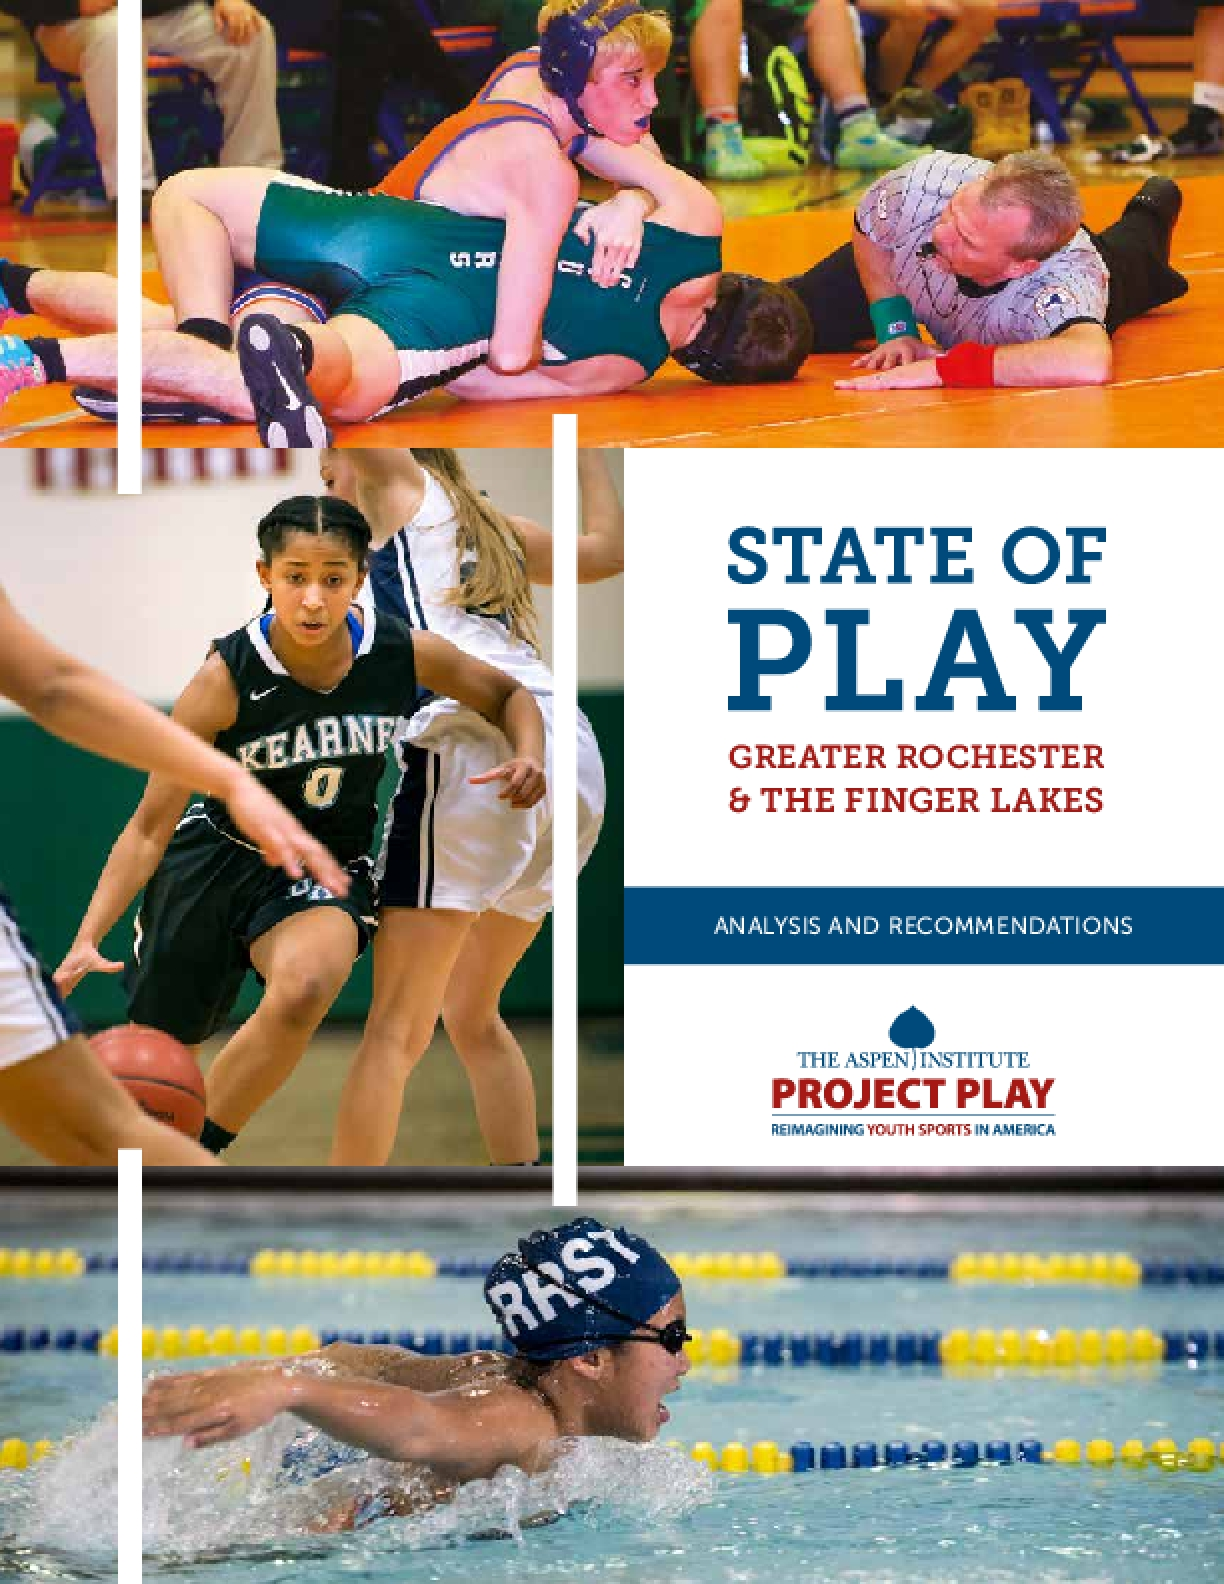 State of Play: Greater Rochester and the Finger Lakes